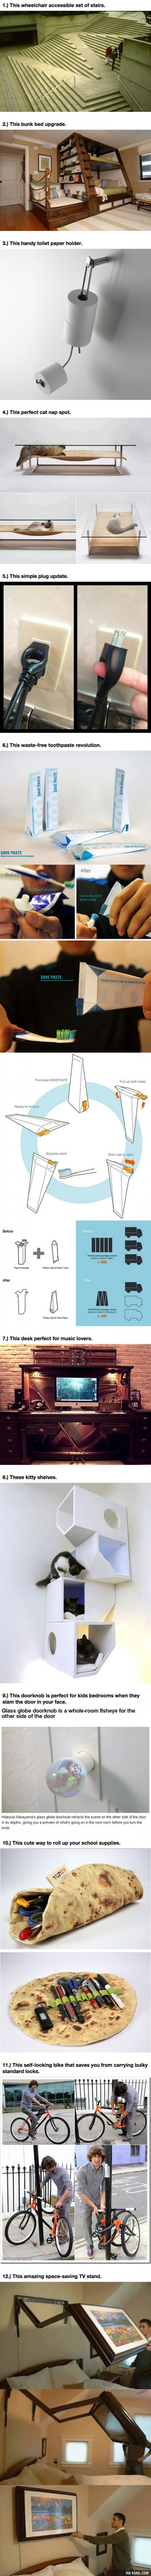 These 12 Designs Are So Brilliant Perfect That They'll Change Your Life - 9GAG